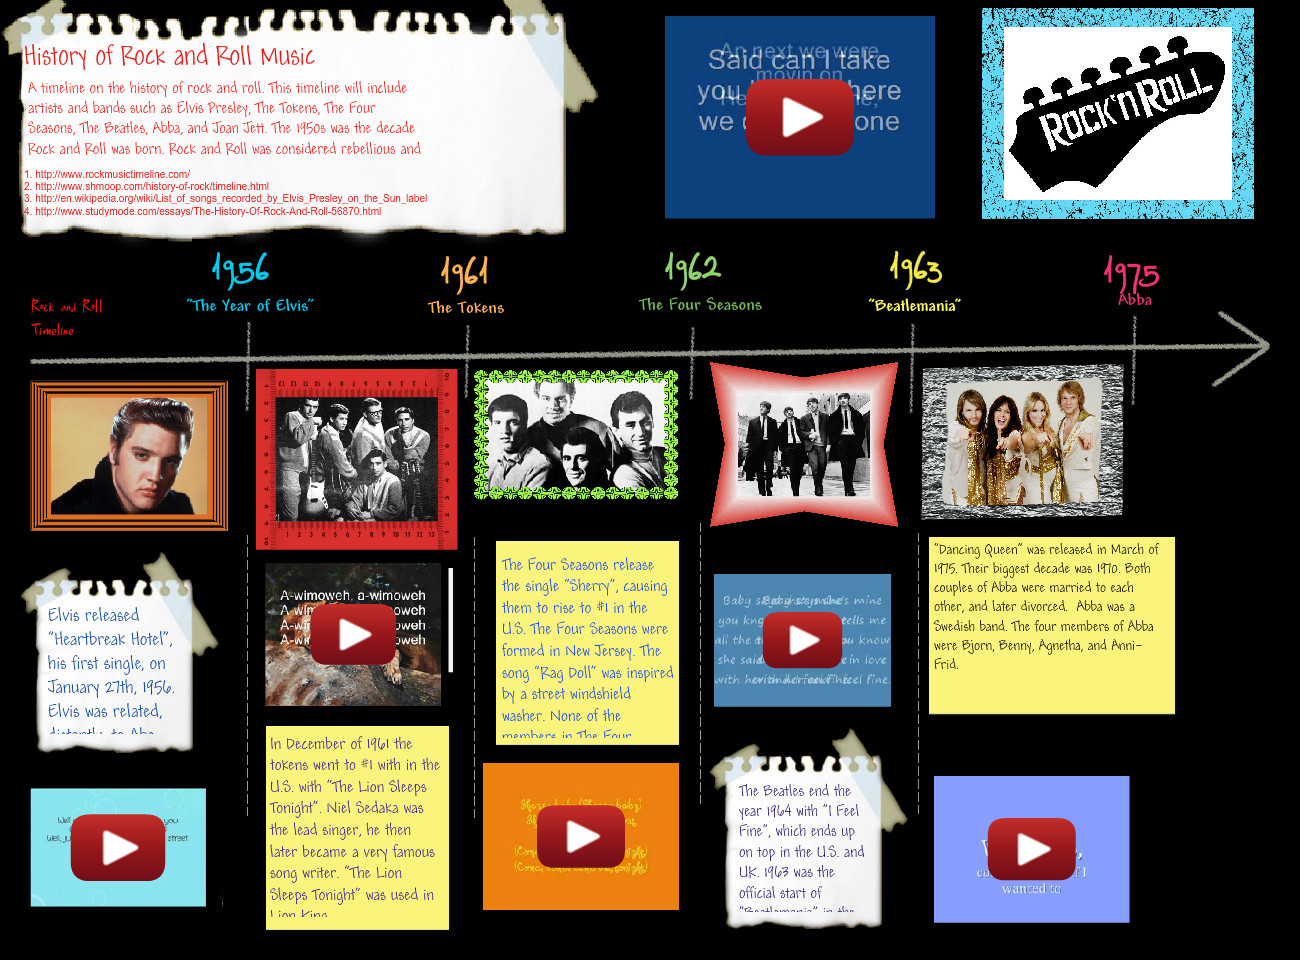 [2014] Ari2121 (GLA 6 and 7): History of Rock and Roll Music